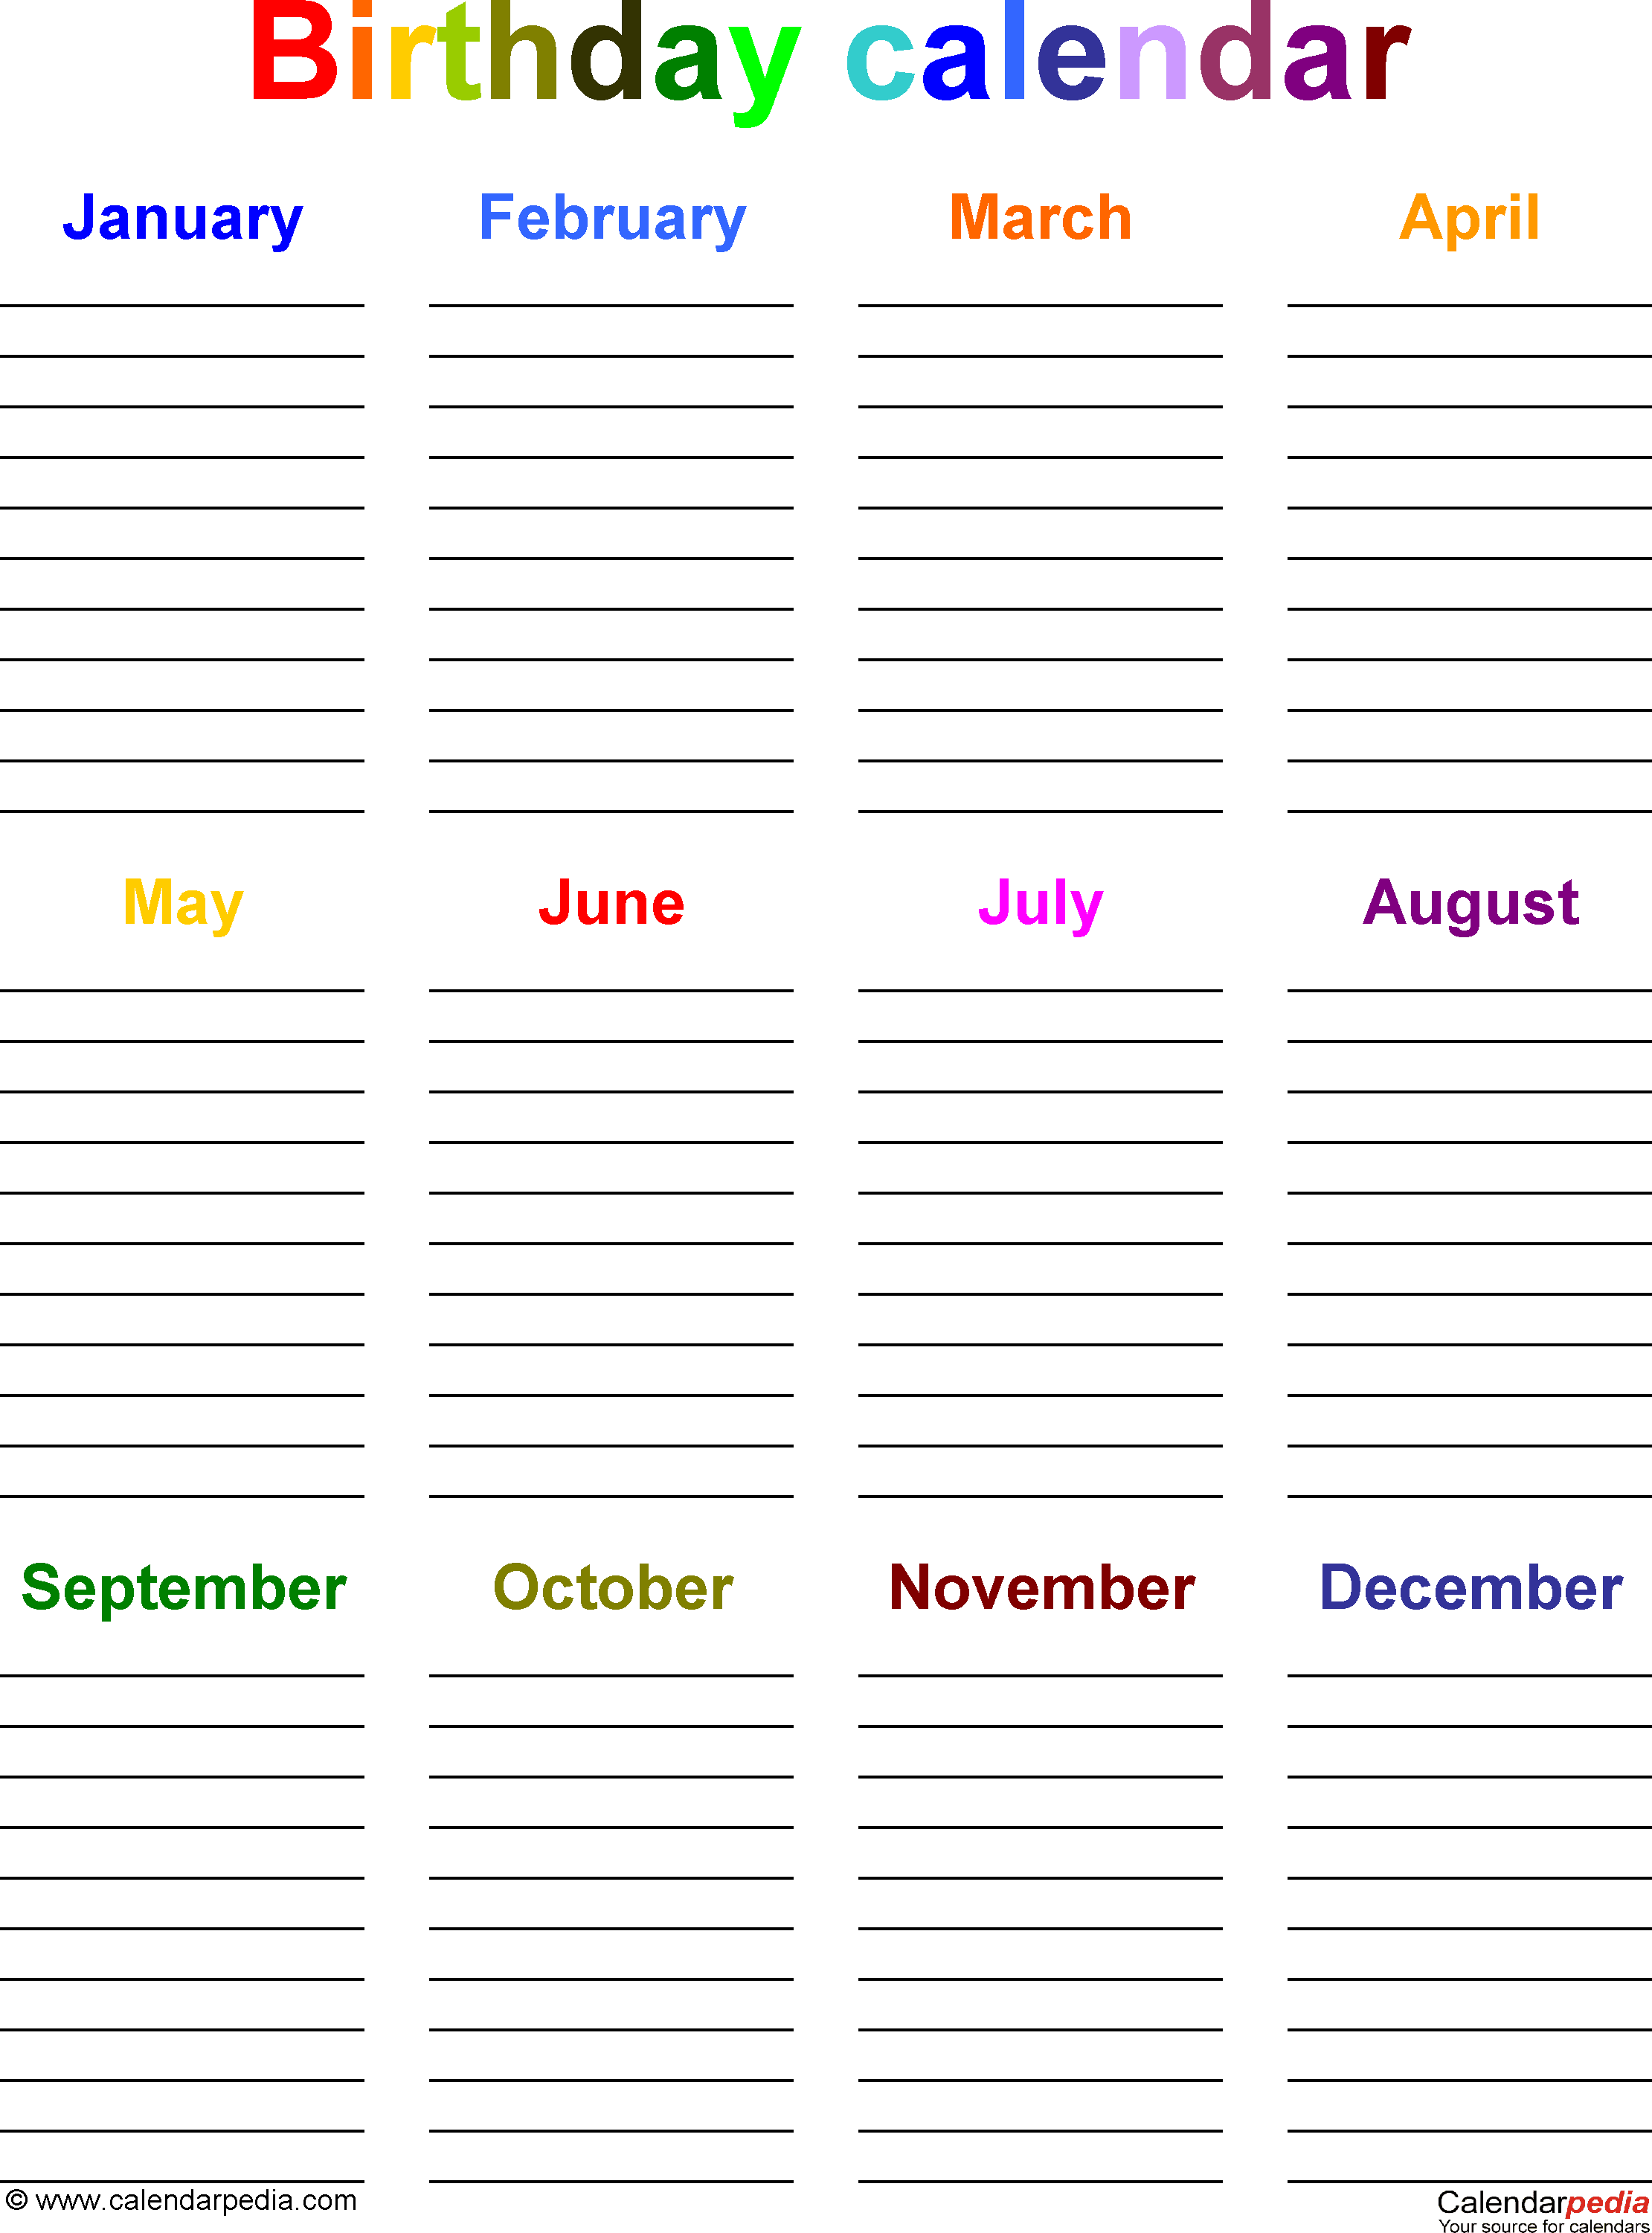 Birthday List Template Free Awesome Template 5 Pdf Template For Birthday Calendar In Color Portrait .